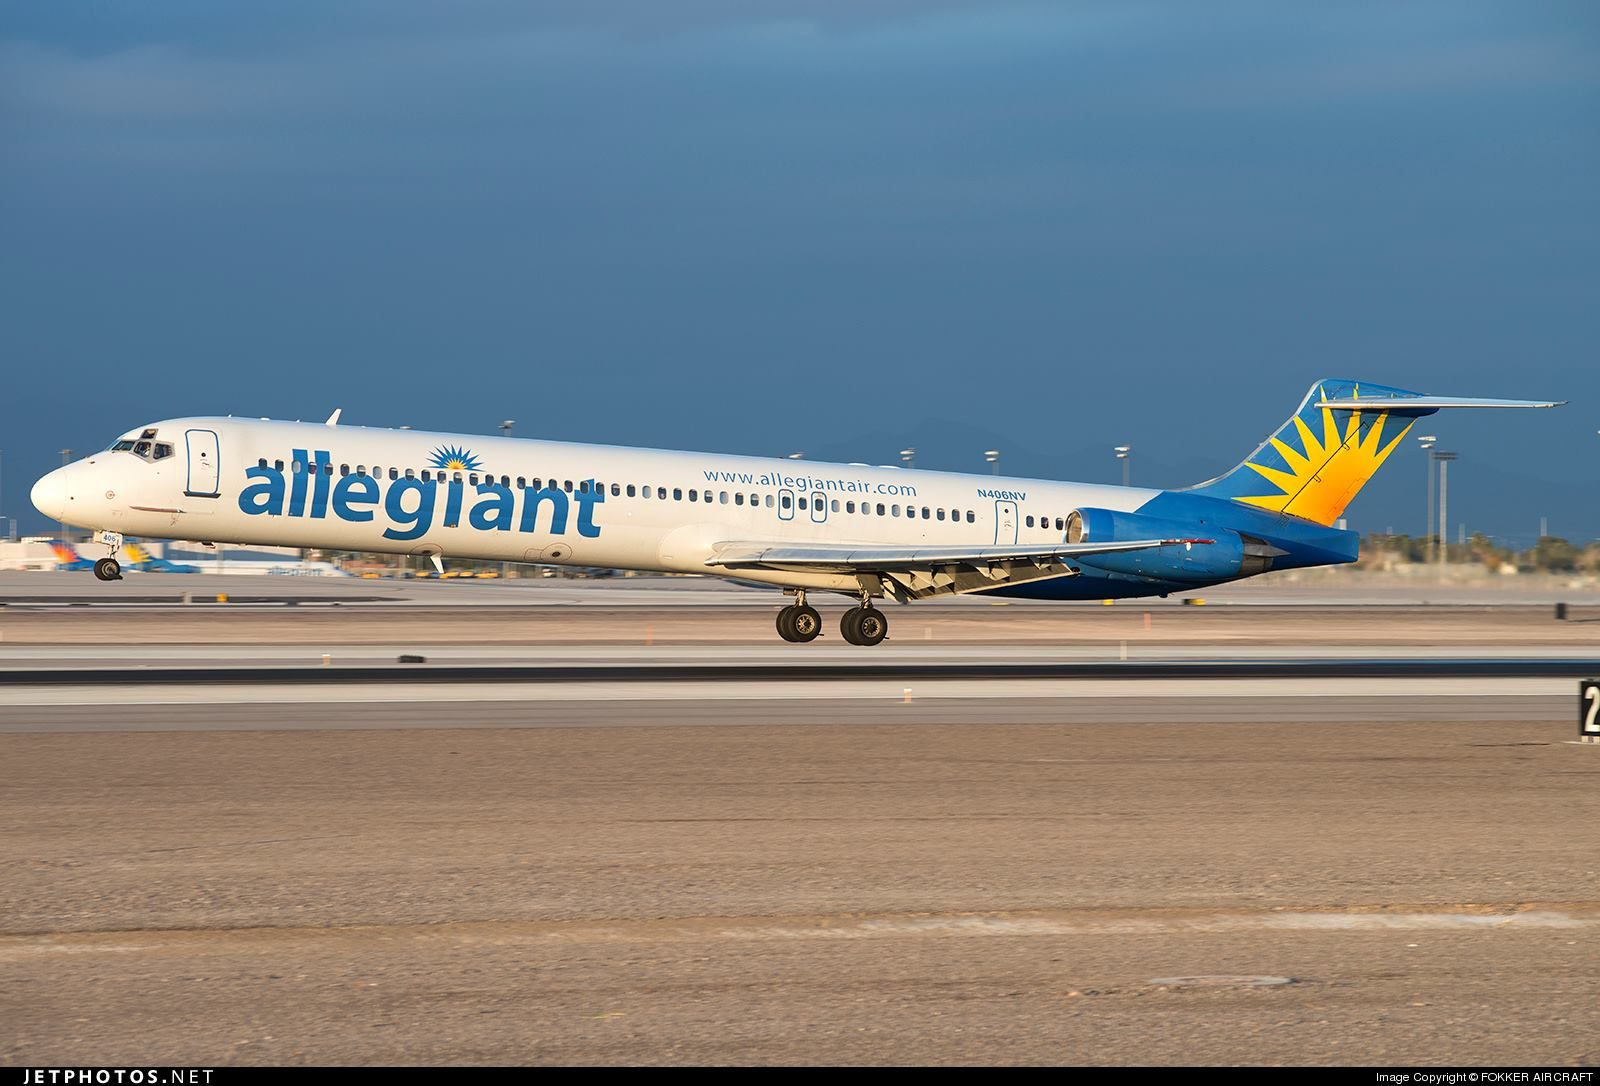 MD80. Allegiant air, Aviation, Commercial aircraft